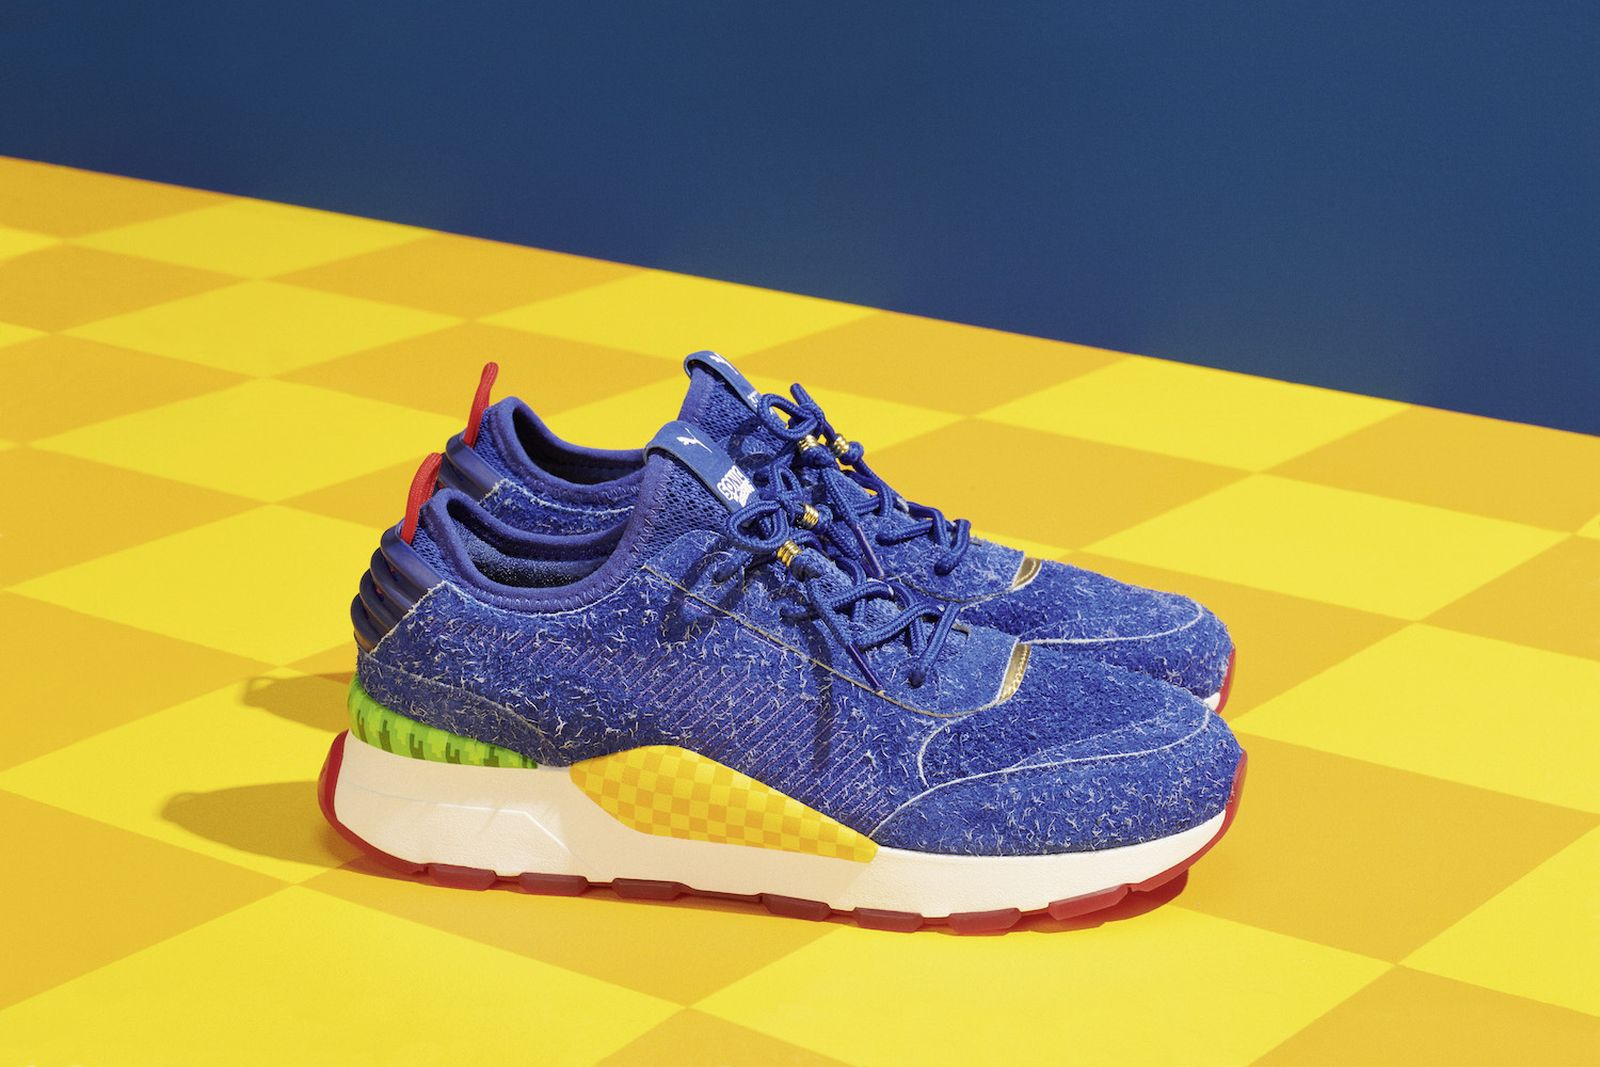 puma-sega-rs-0-sonic-and-dr-eggman-release-date-price-03